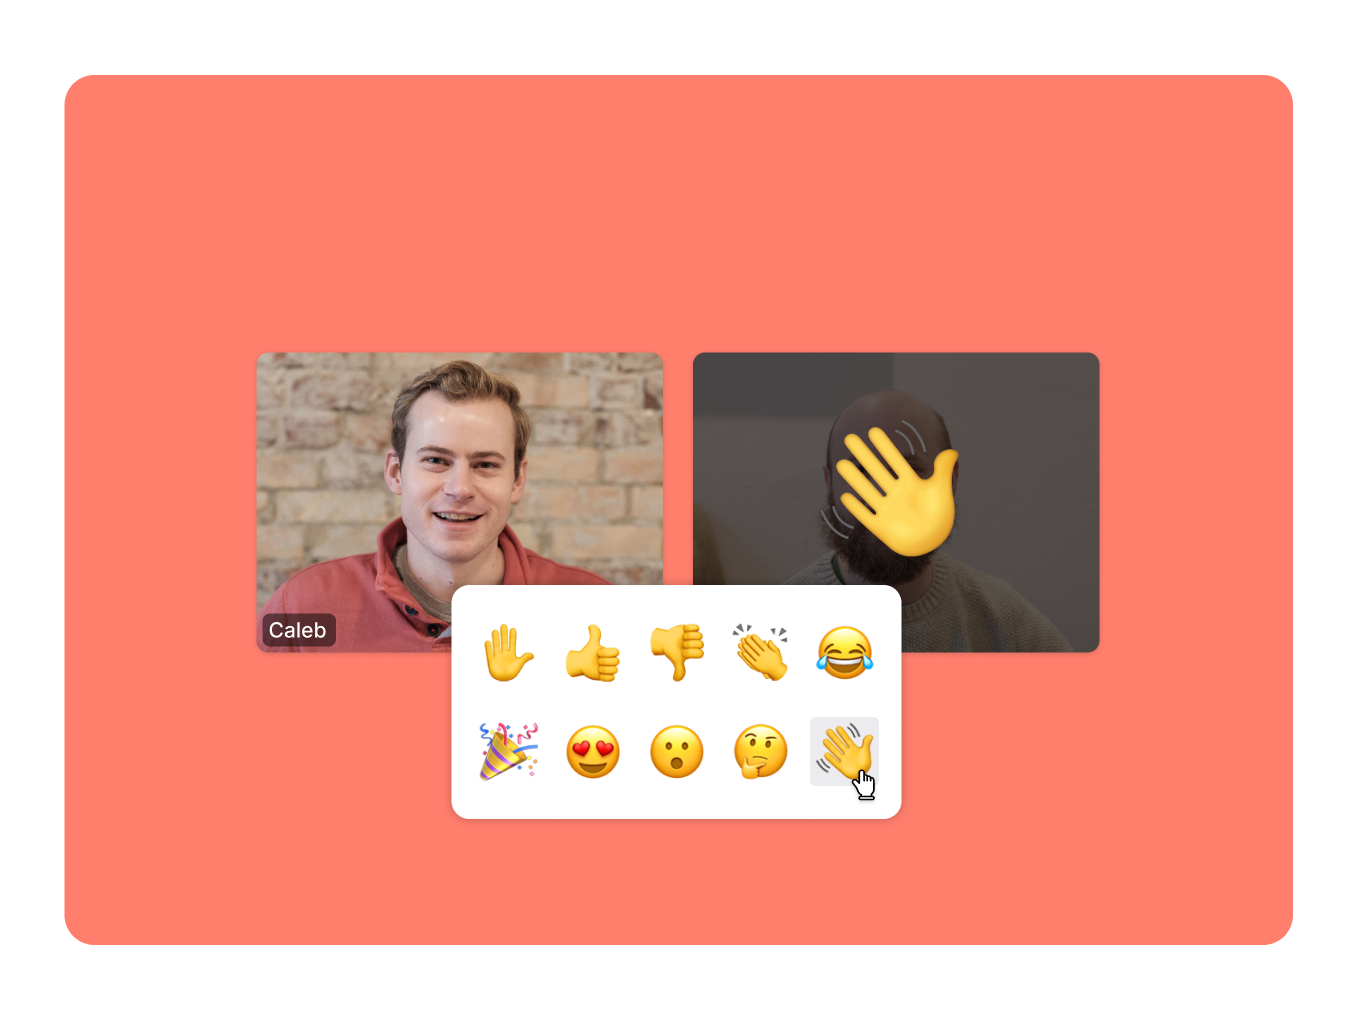 React with emojis without having to interrupt the speaker 🤗